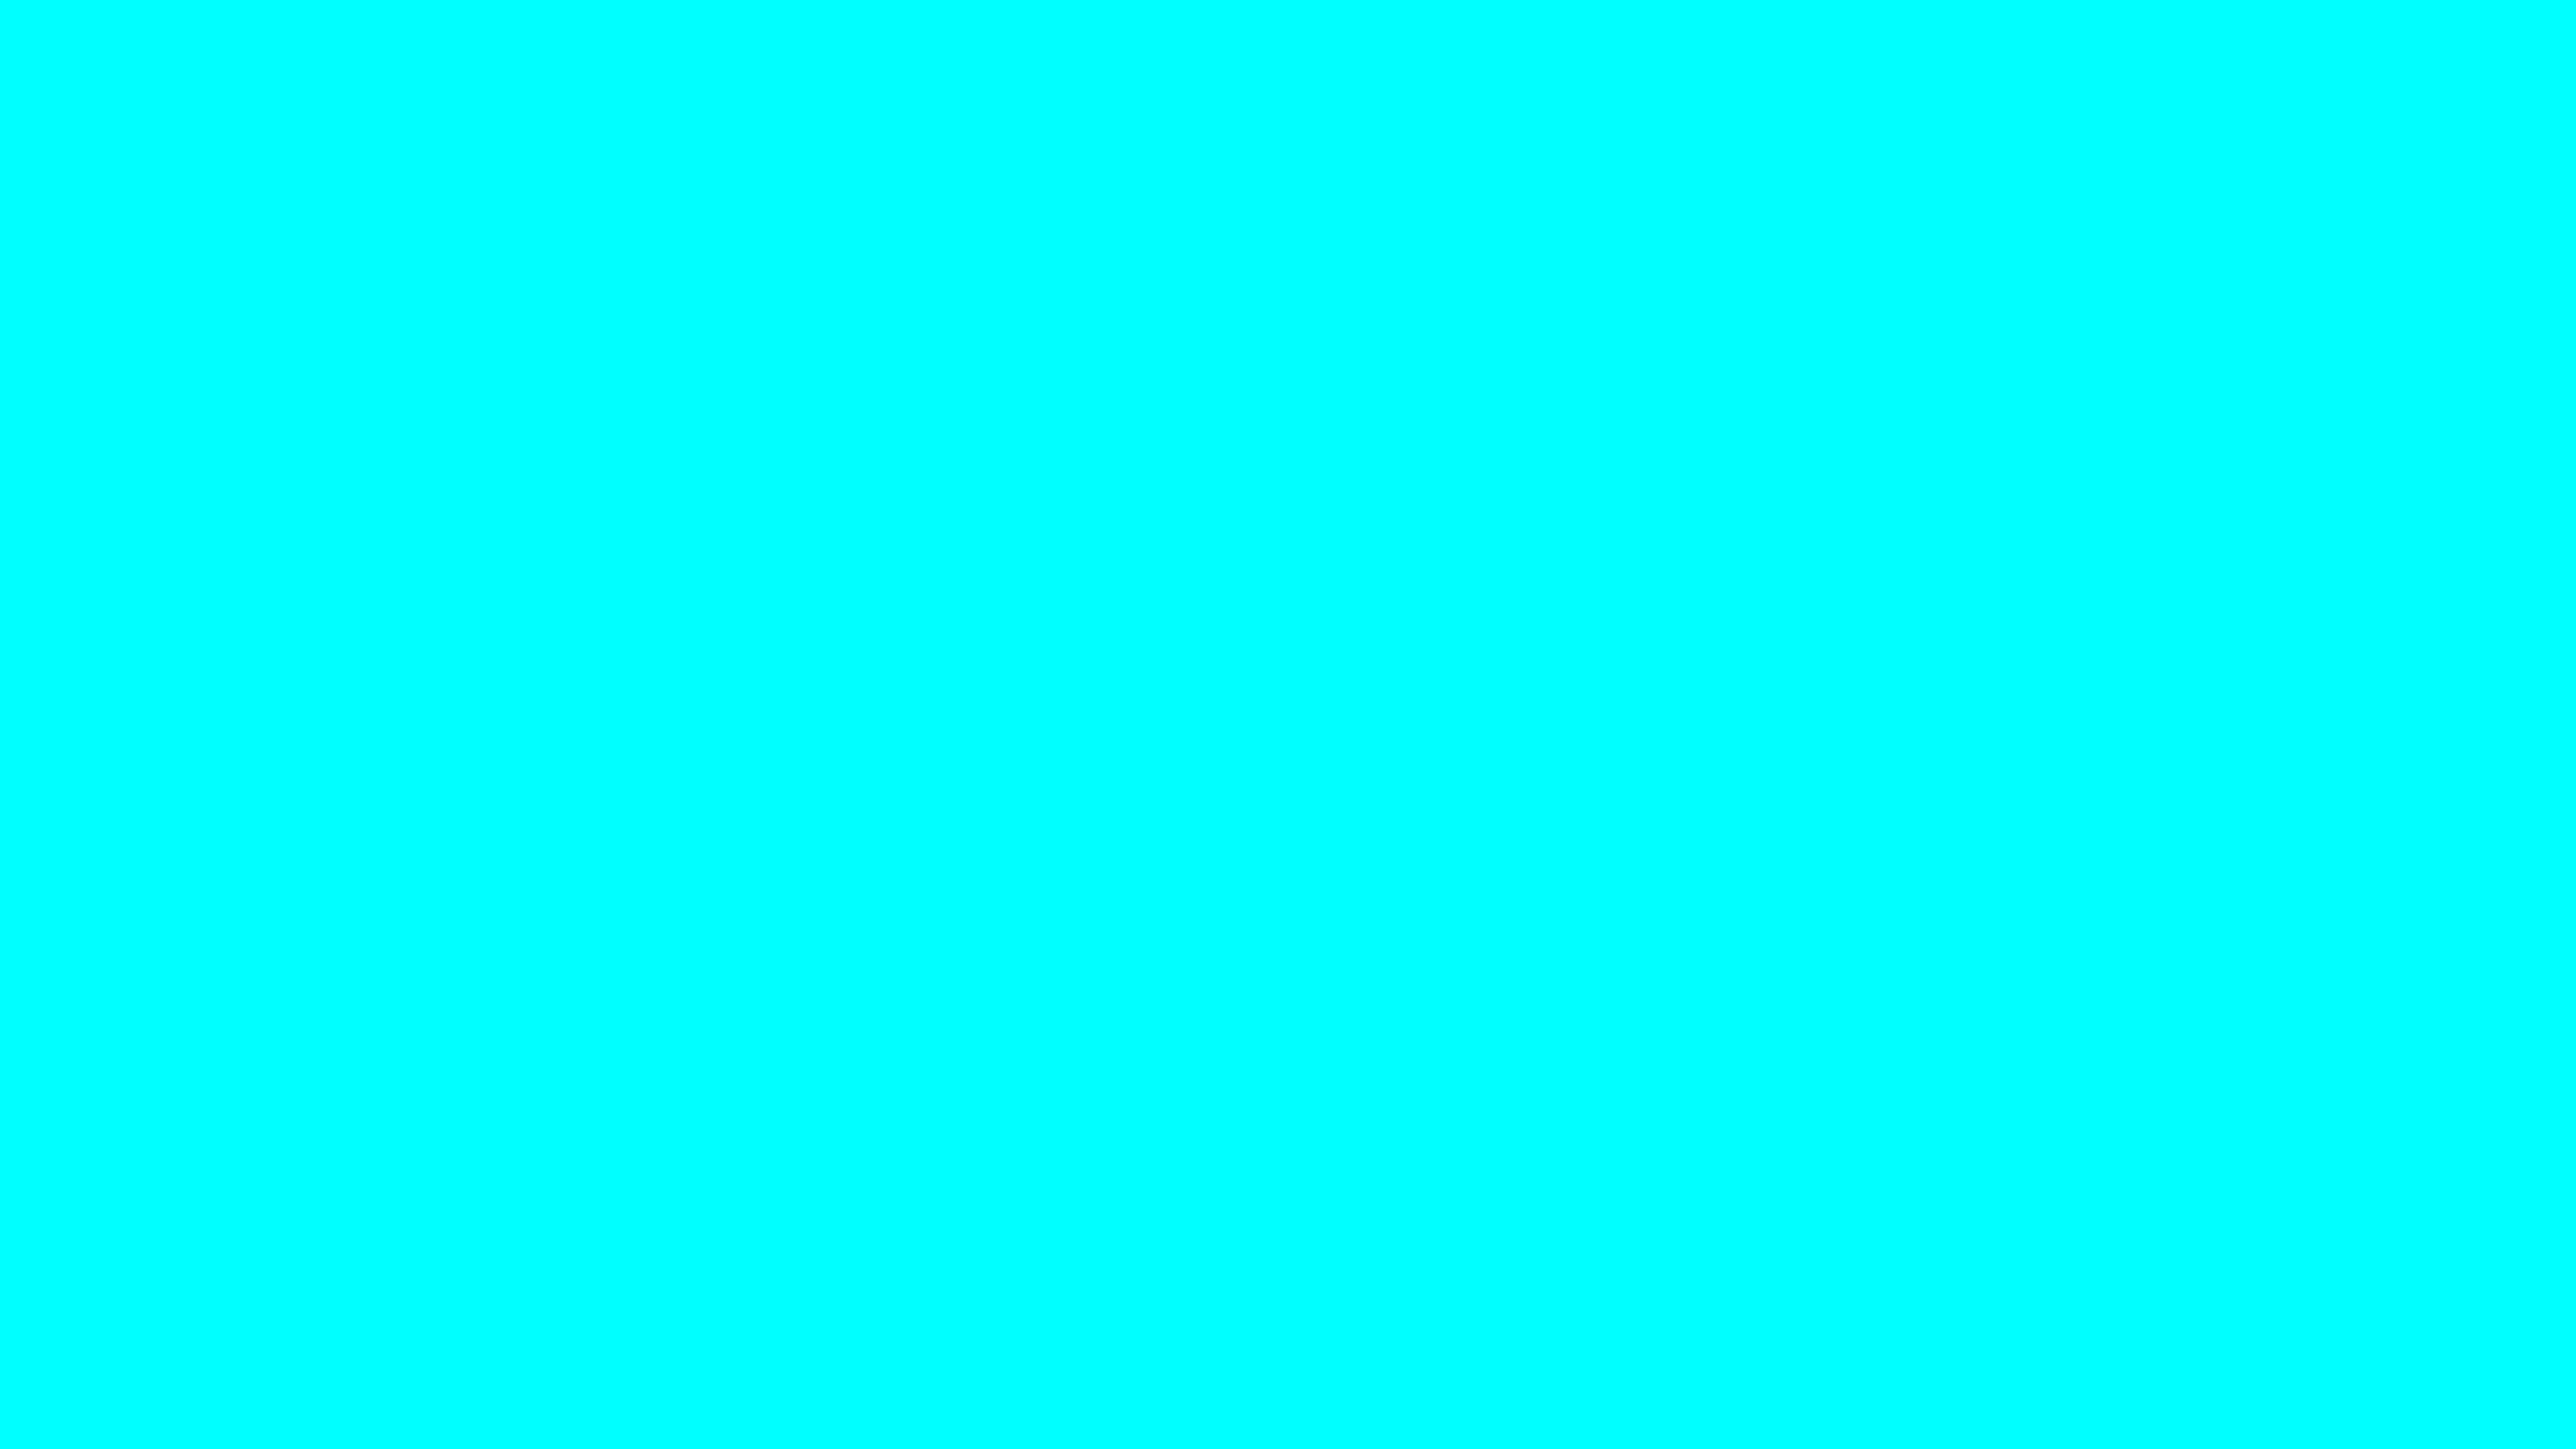 4096x2304 Cyan Solid Color Background